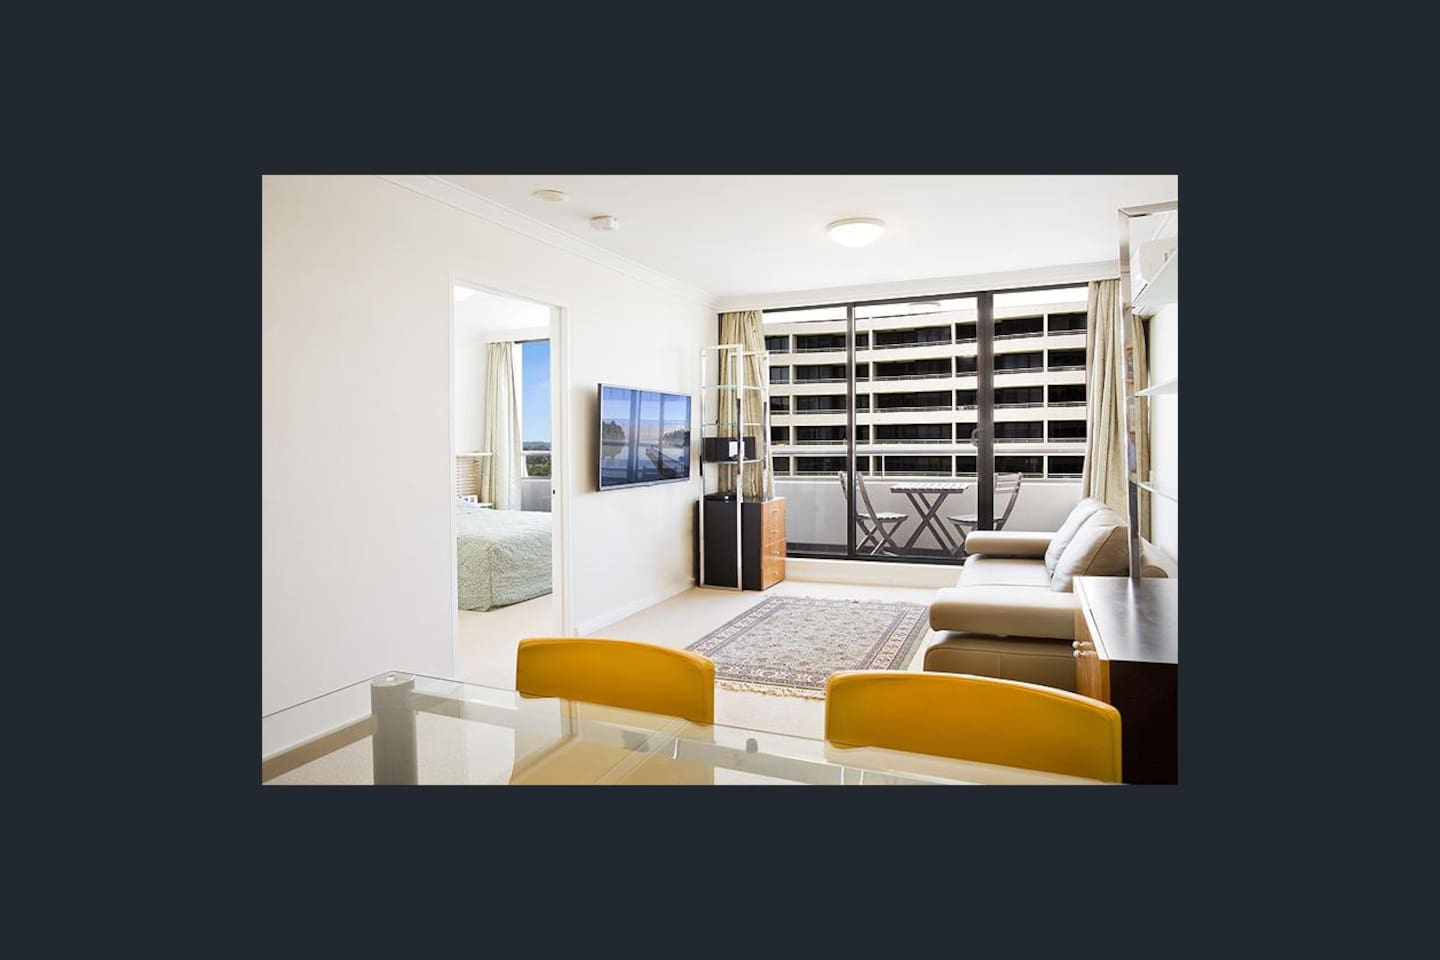 Beautifully arranged air-conditioned living space (lots of natural sunlight), with over-size flat TV to screen Foxtel HD movies, leading to a balcony.  Blackout curtains for privacy and to keep away sunlight are installed.